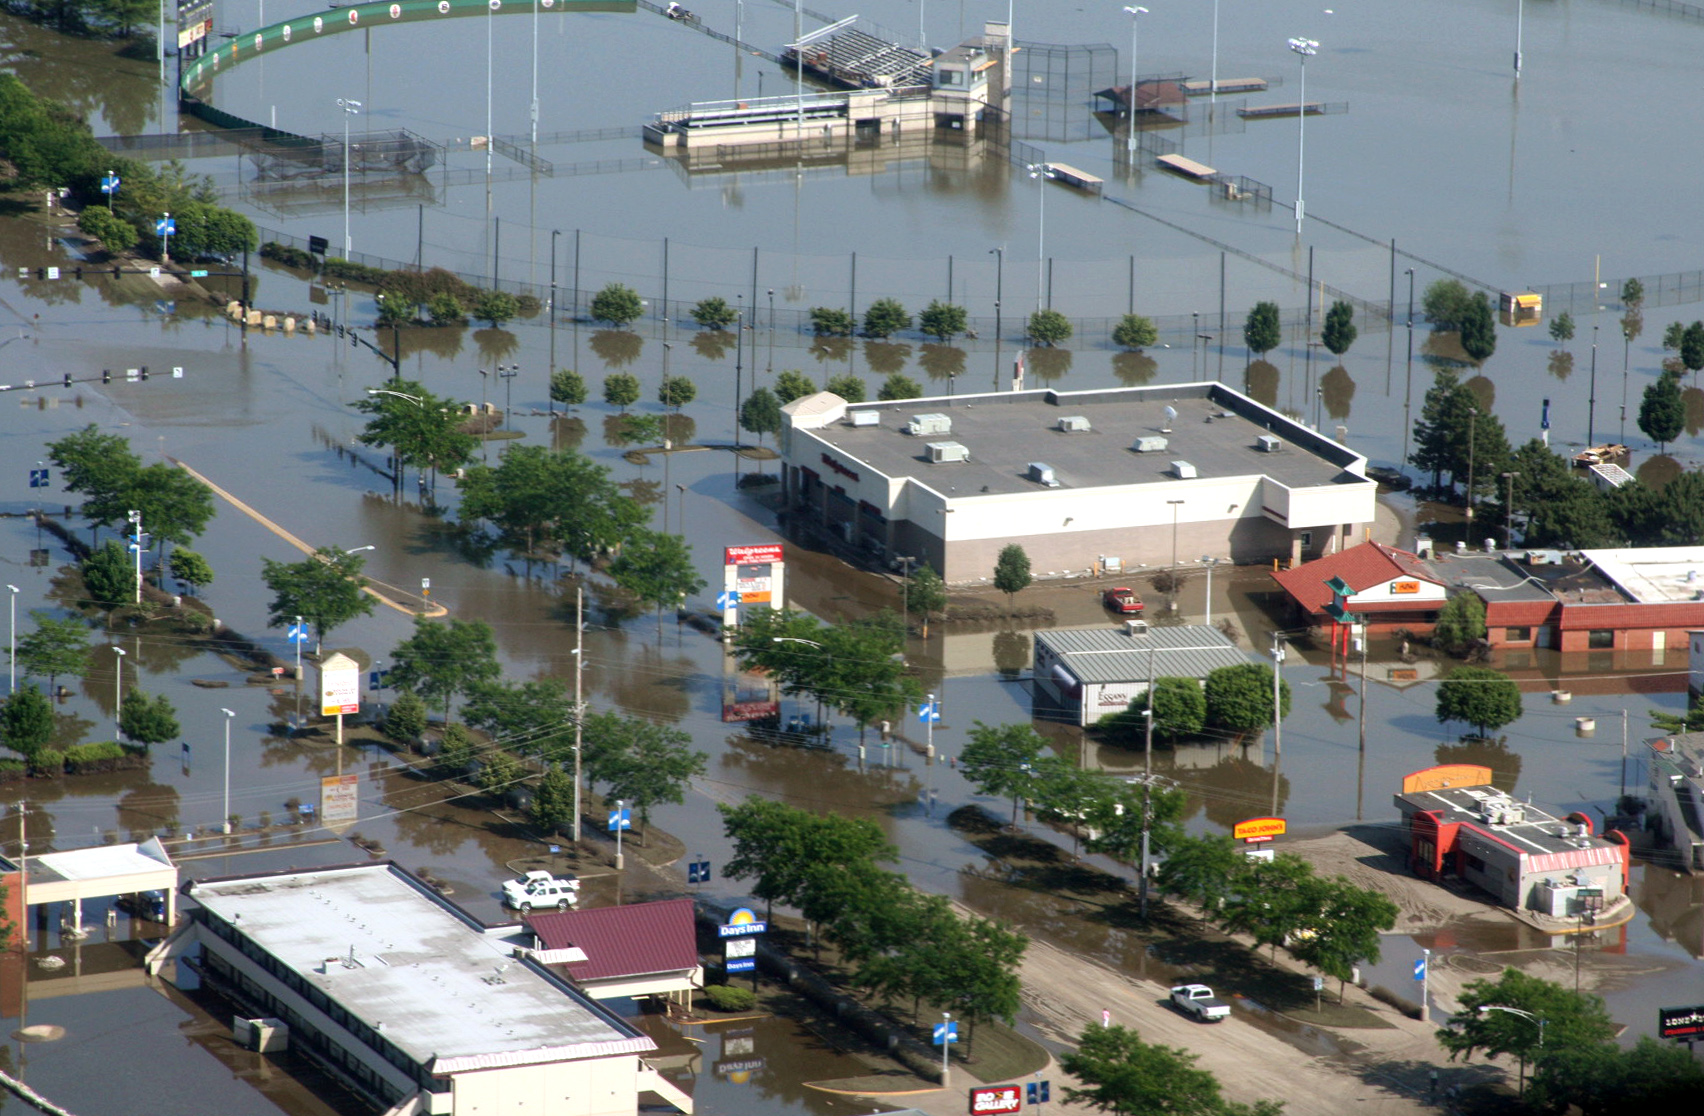 Water Damage Commercial Insurance Claim The Greenspan Co./Adjusters International